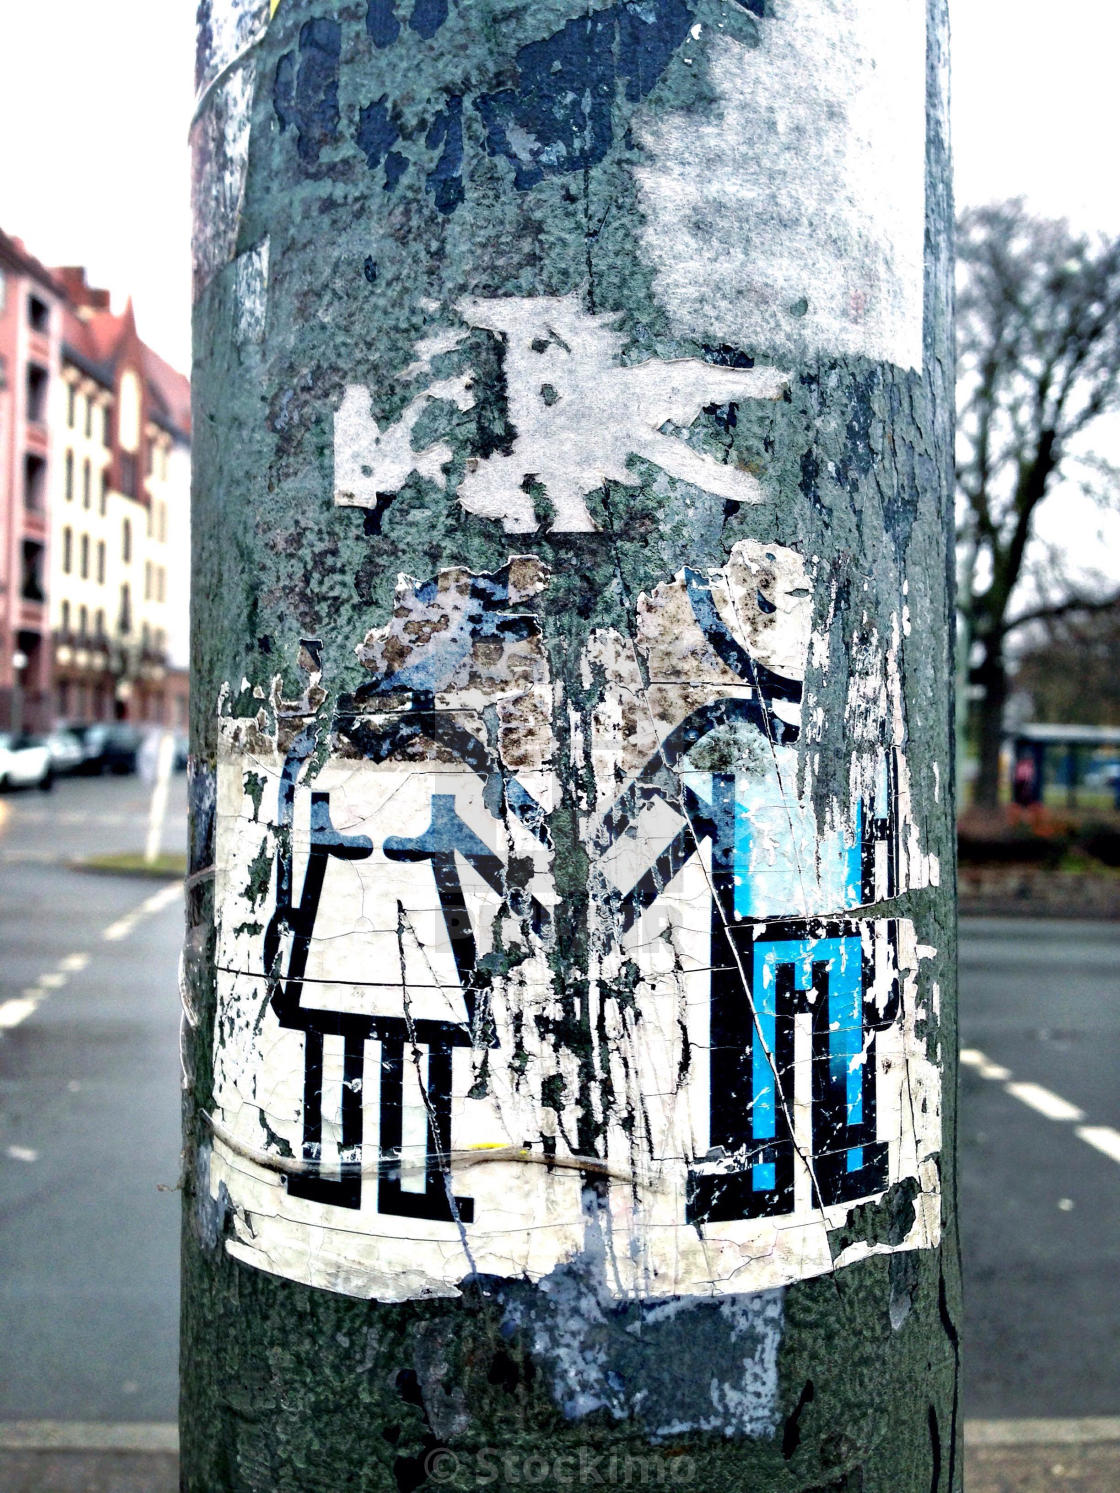 A street art sticker of a man and a woman holding hands on the pole